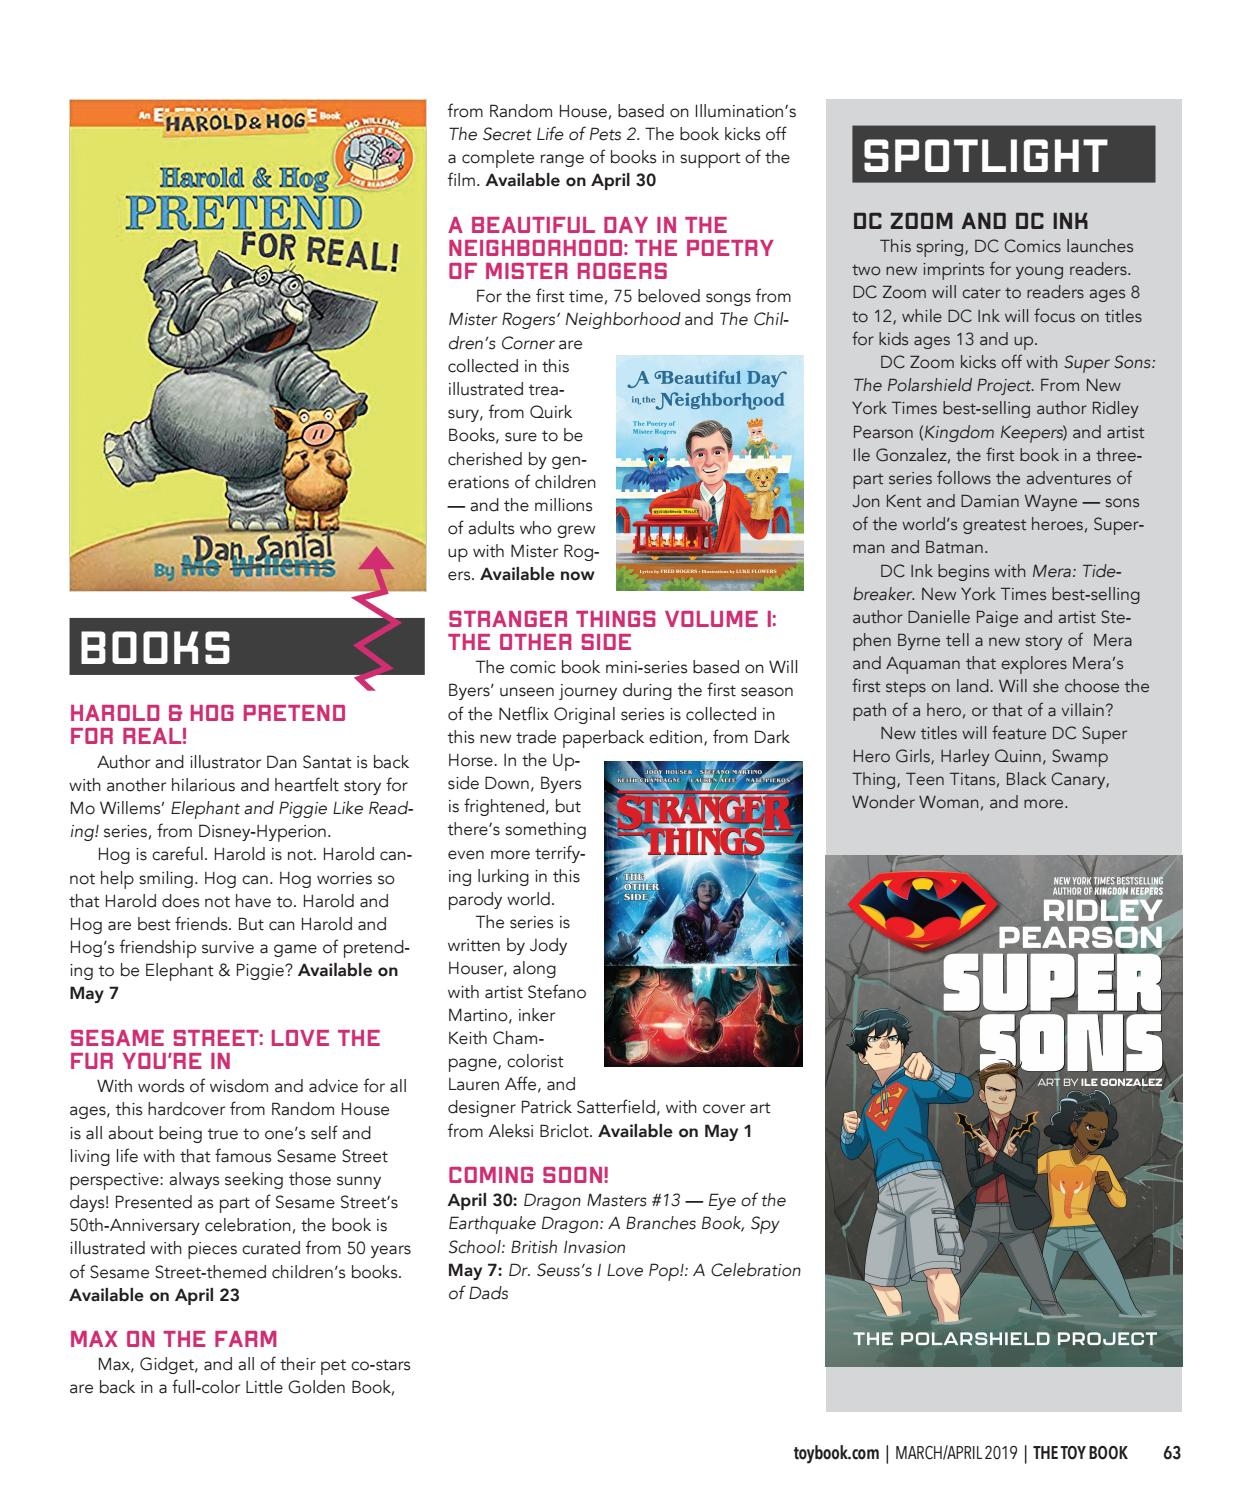 March/April 2019 by The Toy Book - issuu